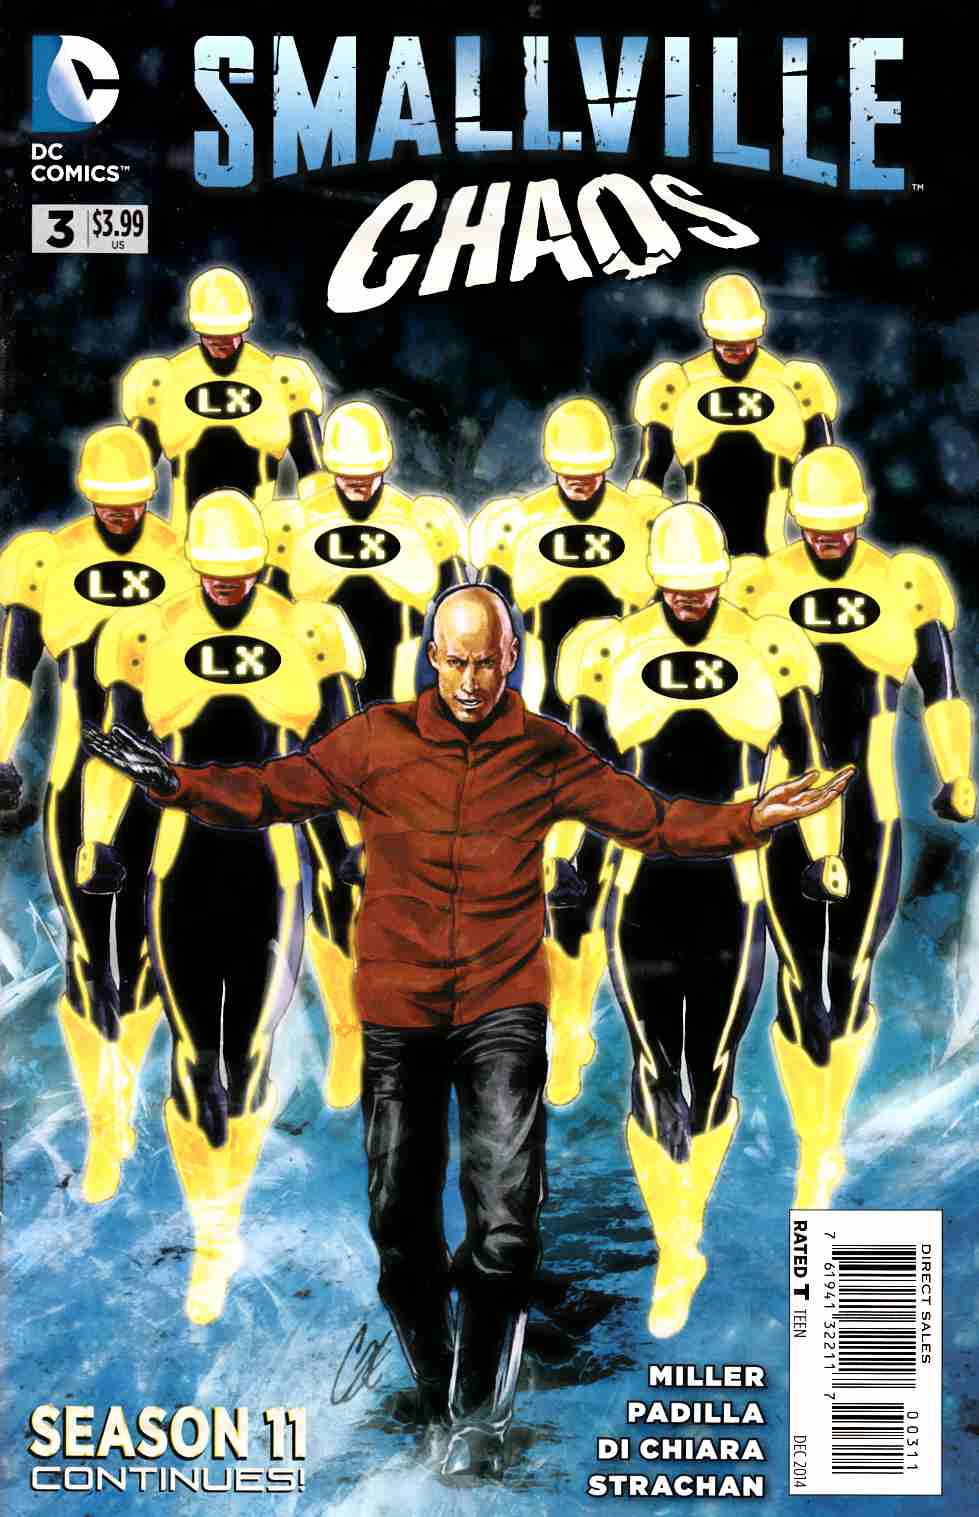 Smallville Season 11 Chaos #3 [Comic] LARGE